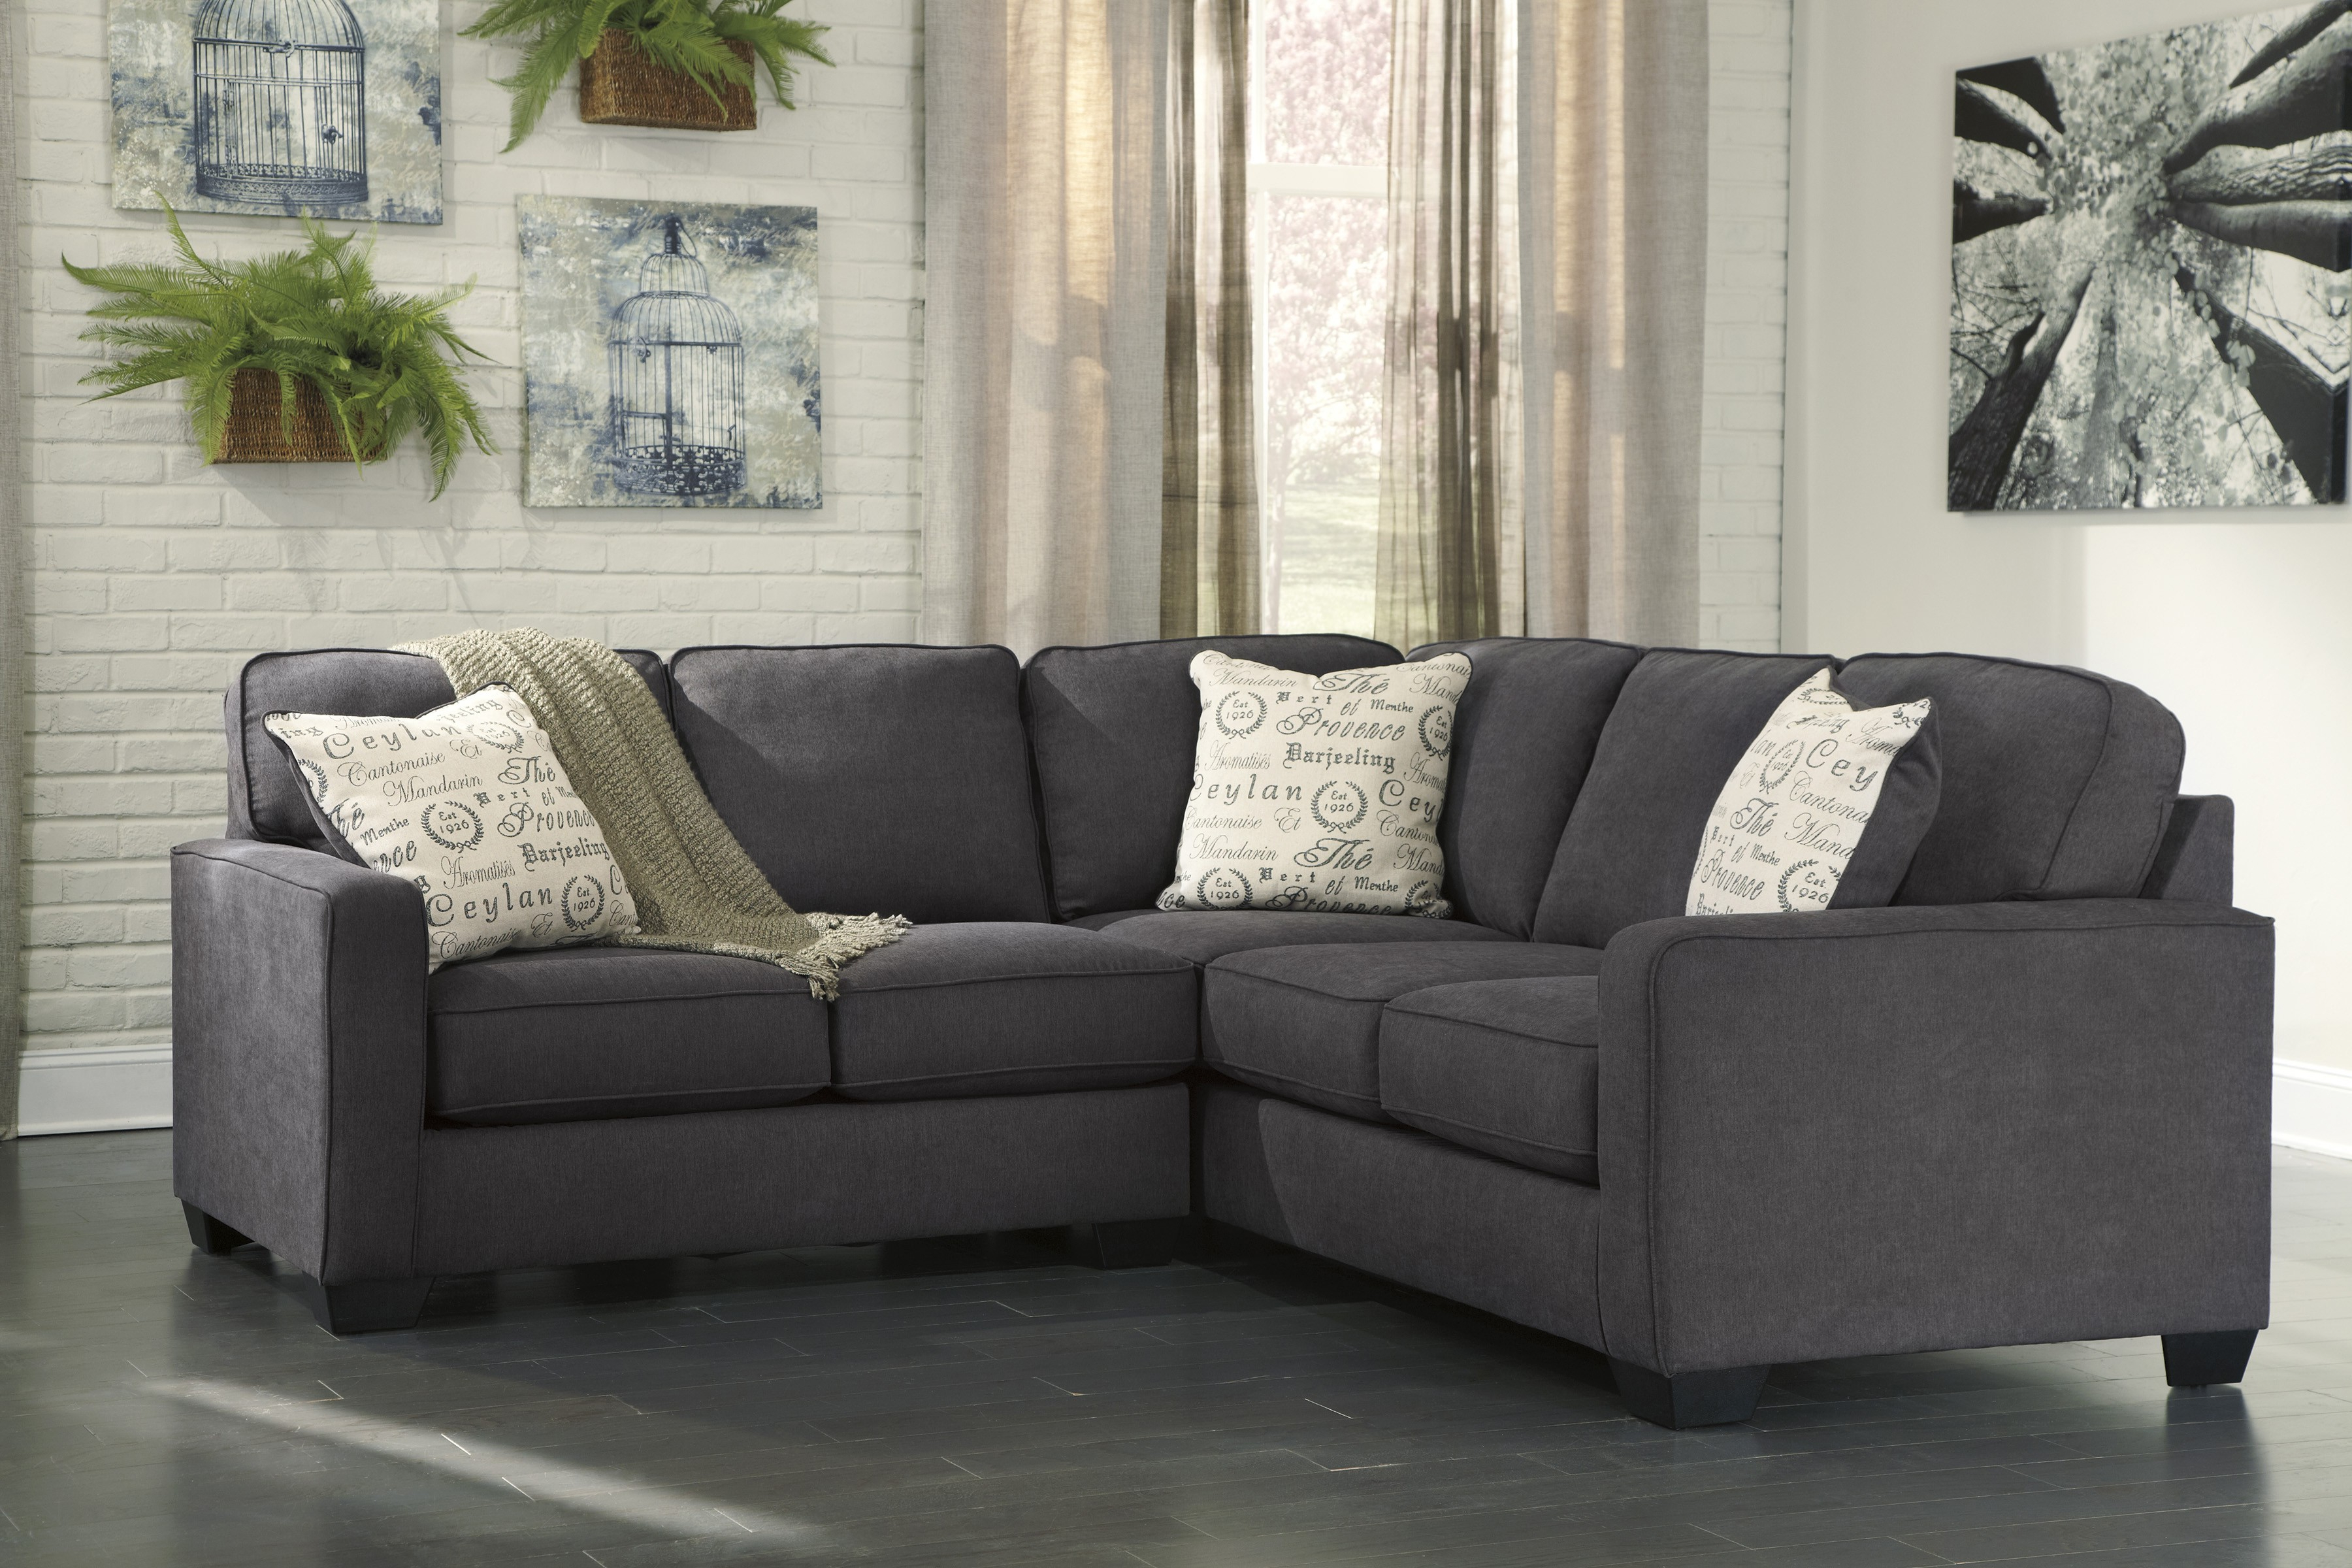 Well Liked Tess 2 Piece Power Reclining Sectionals With Laf Chaise In Alenya Charcoal Piece Sectional Sofa For Furnitureusa Raf Love Tures (View 11 of 20)